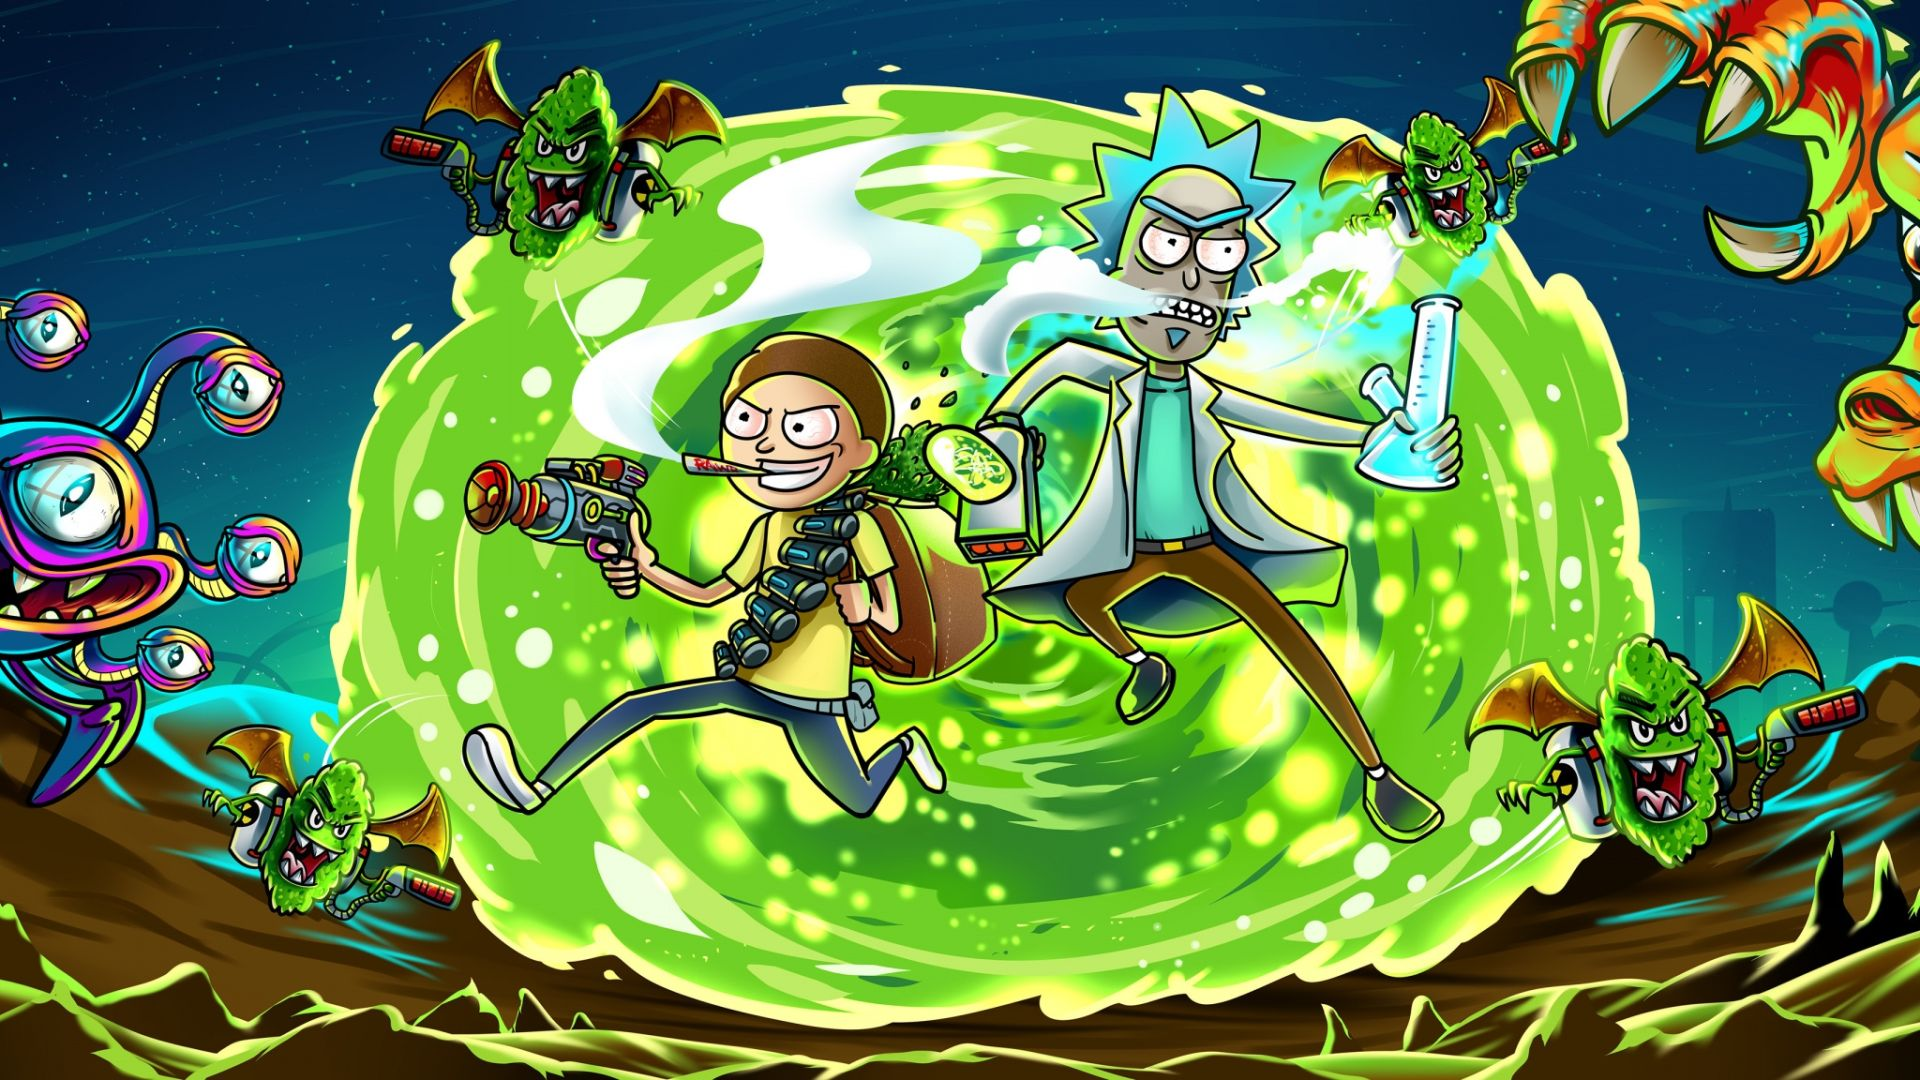 60 Rick and Morty Wallpapers